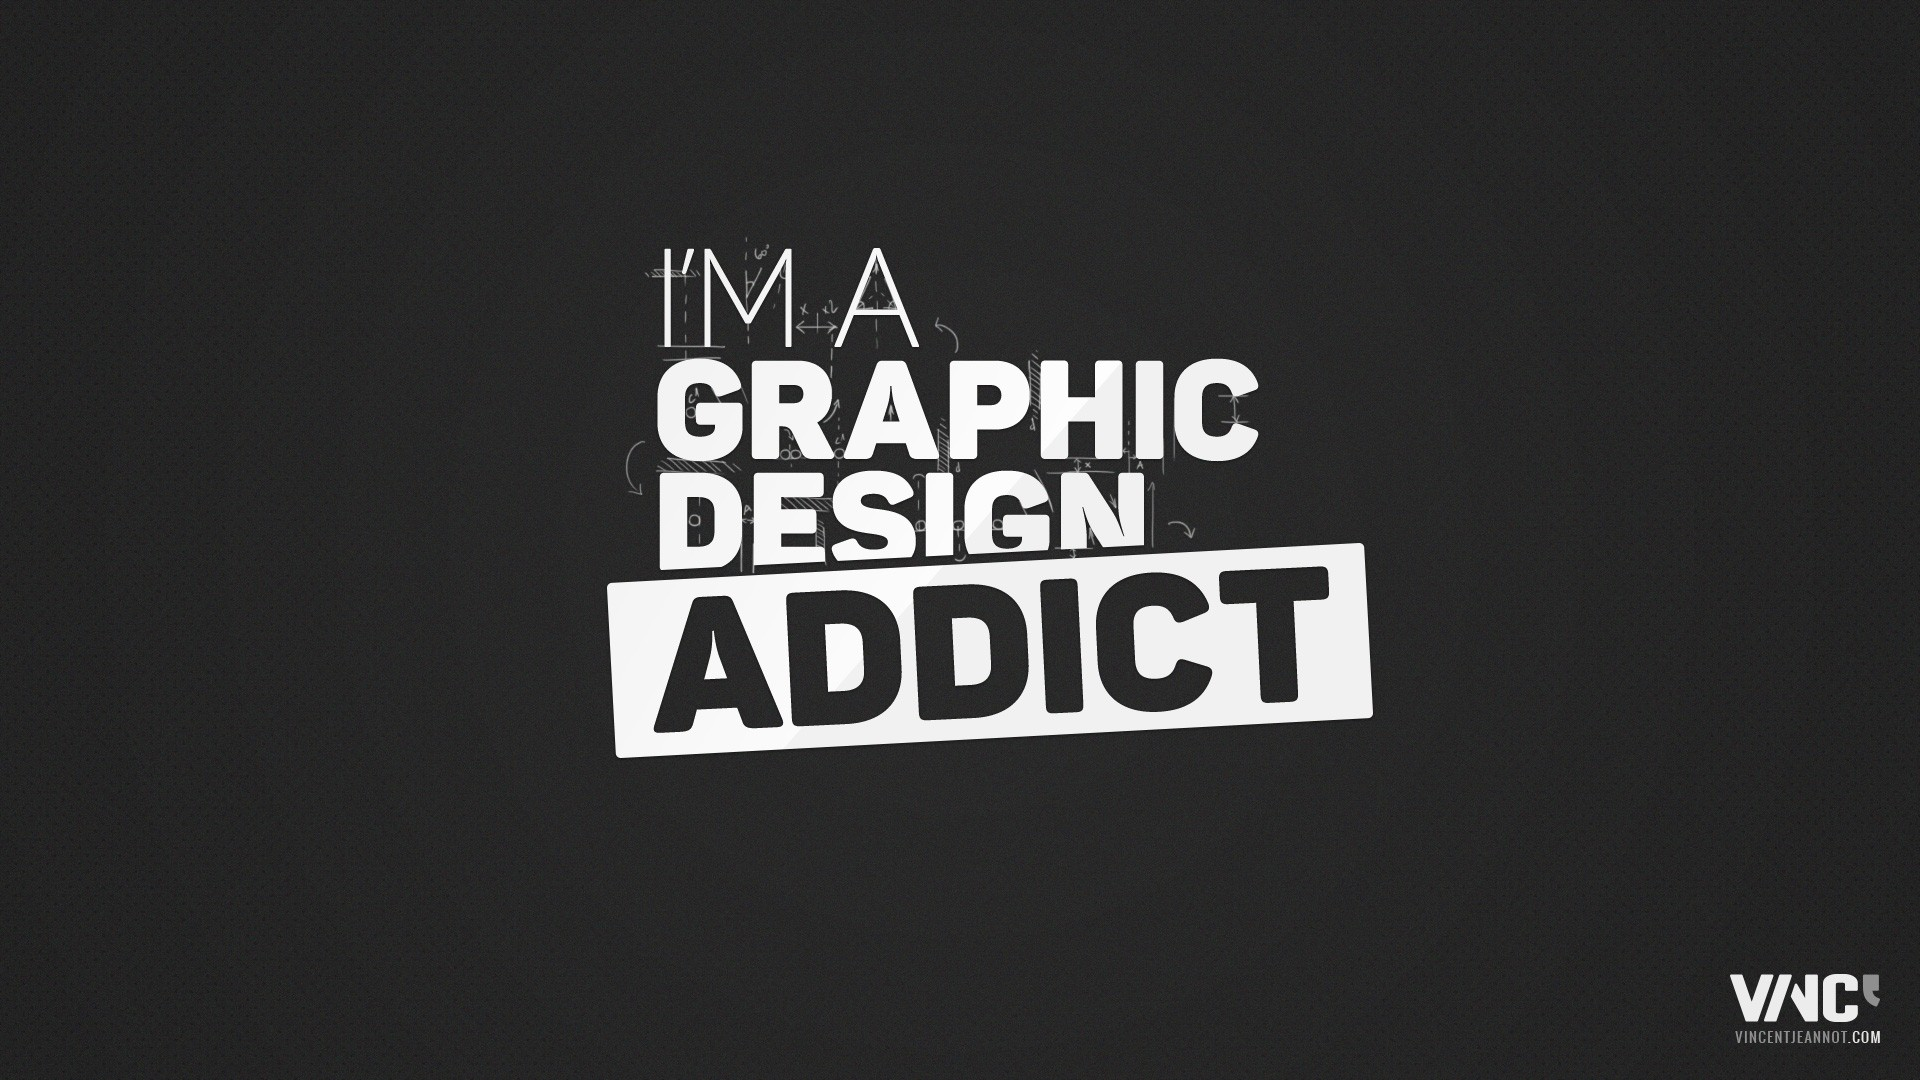 i am a graphic design addict, hd typography, 4k wallpapers, images